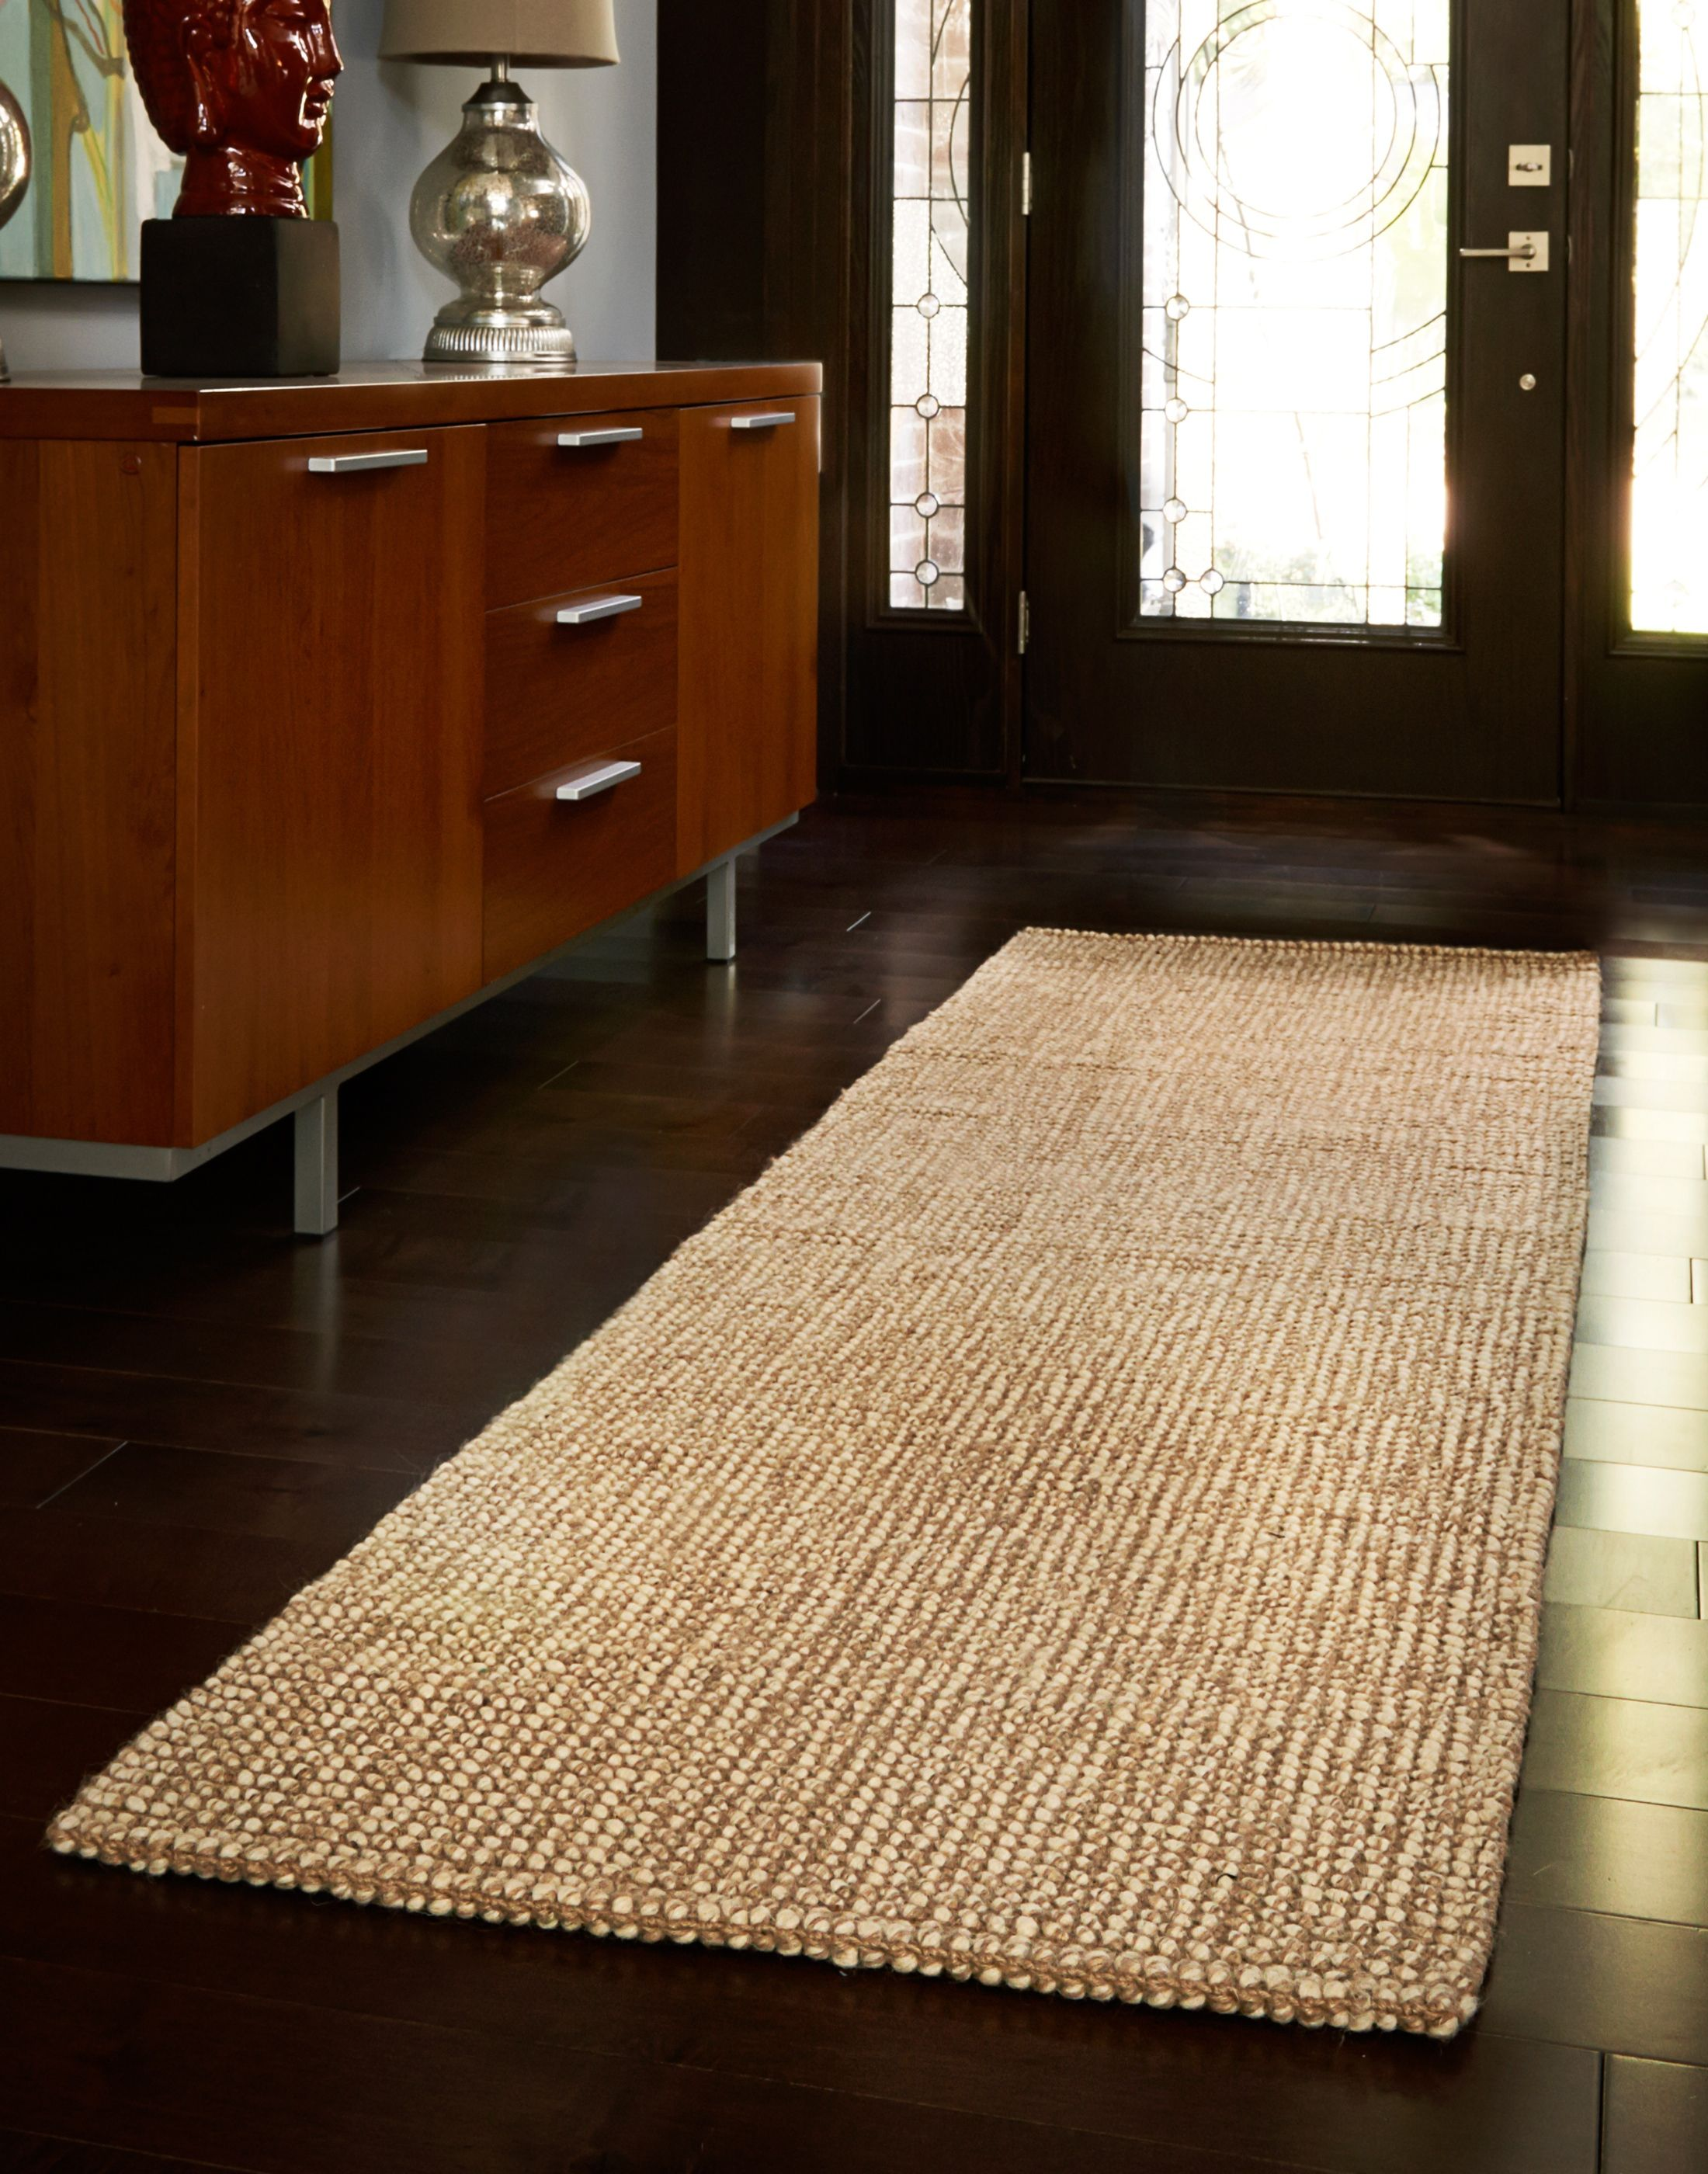 Nice Brown Striped Runner Rug Entryway Hallway Home Decor For Rugs And Runners Entry Way Rugsnatural Fiber